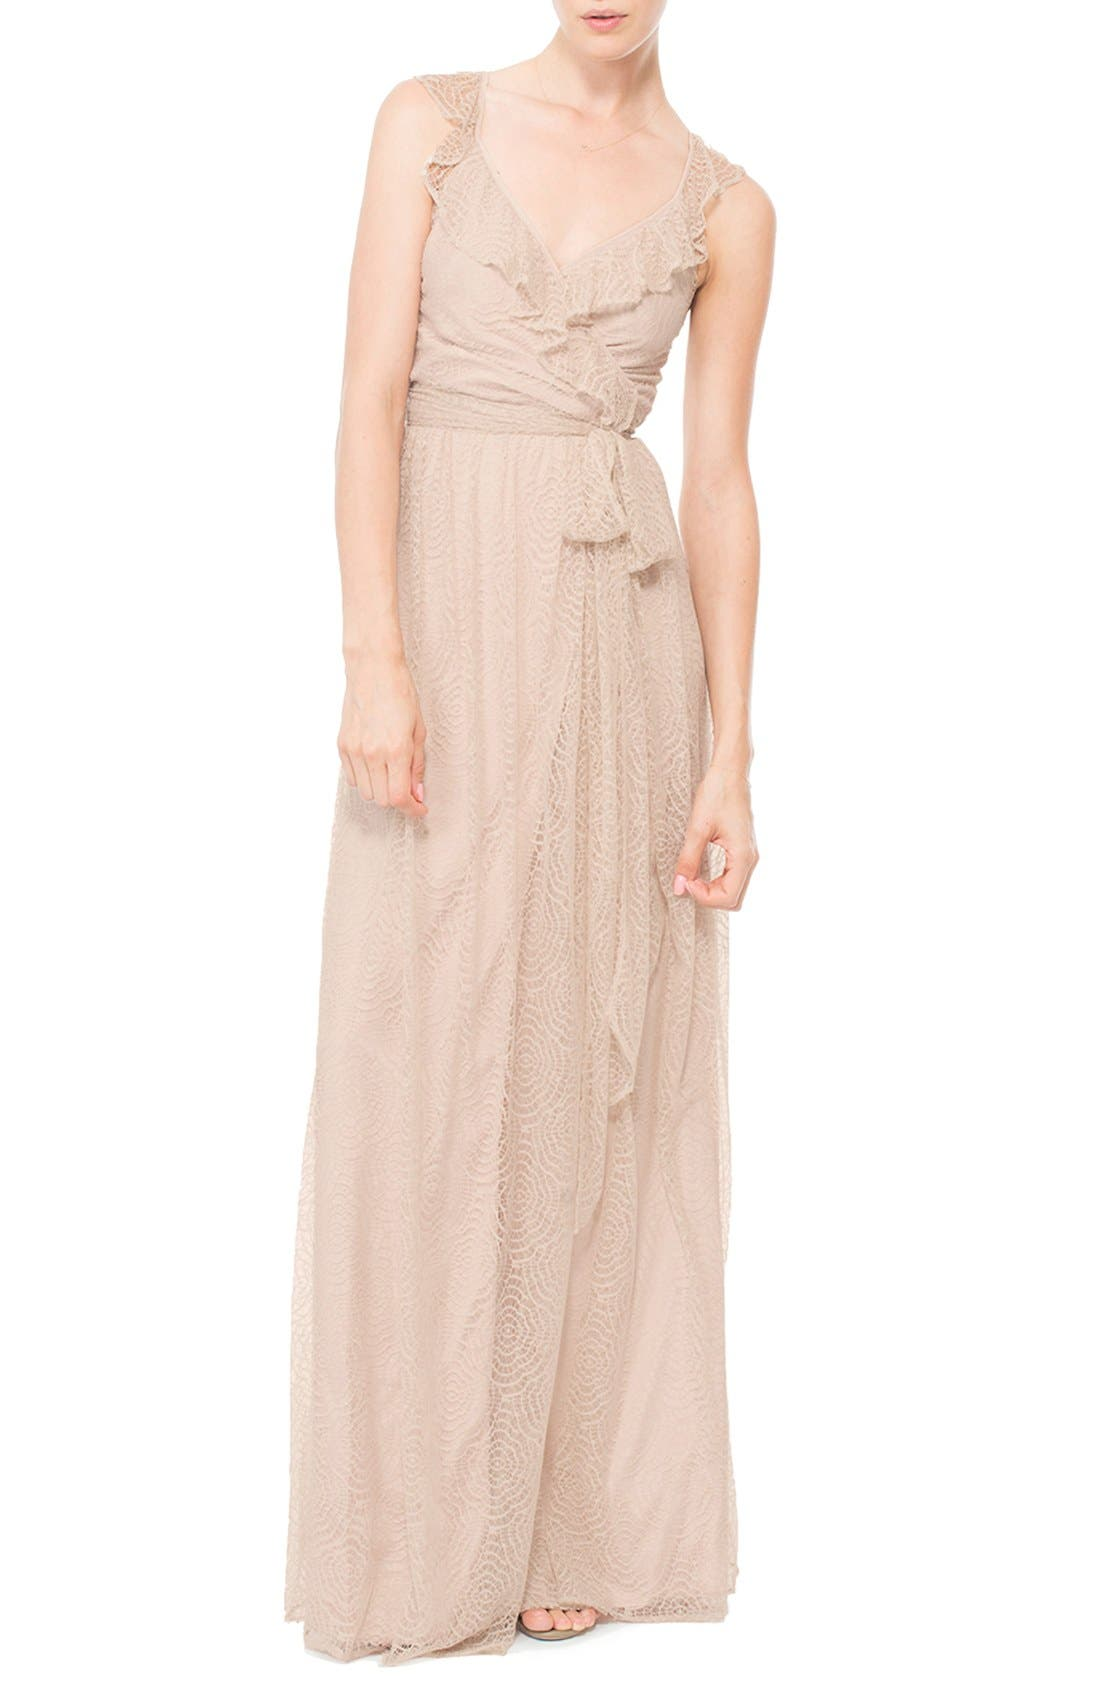 Ceremony by Joanna August 'Lacey' Ruffle Wrap Lace Dress